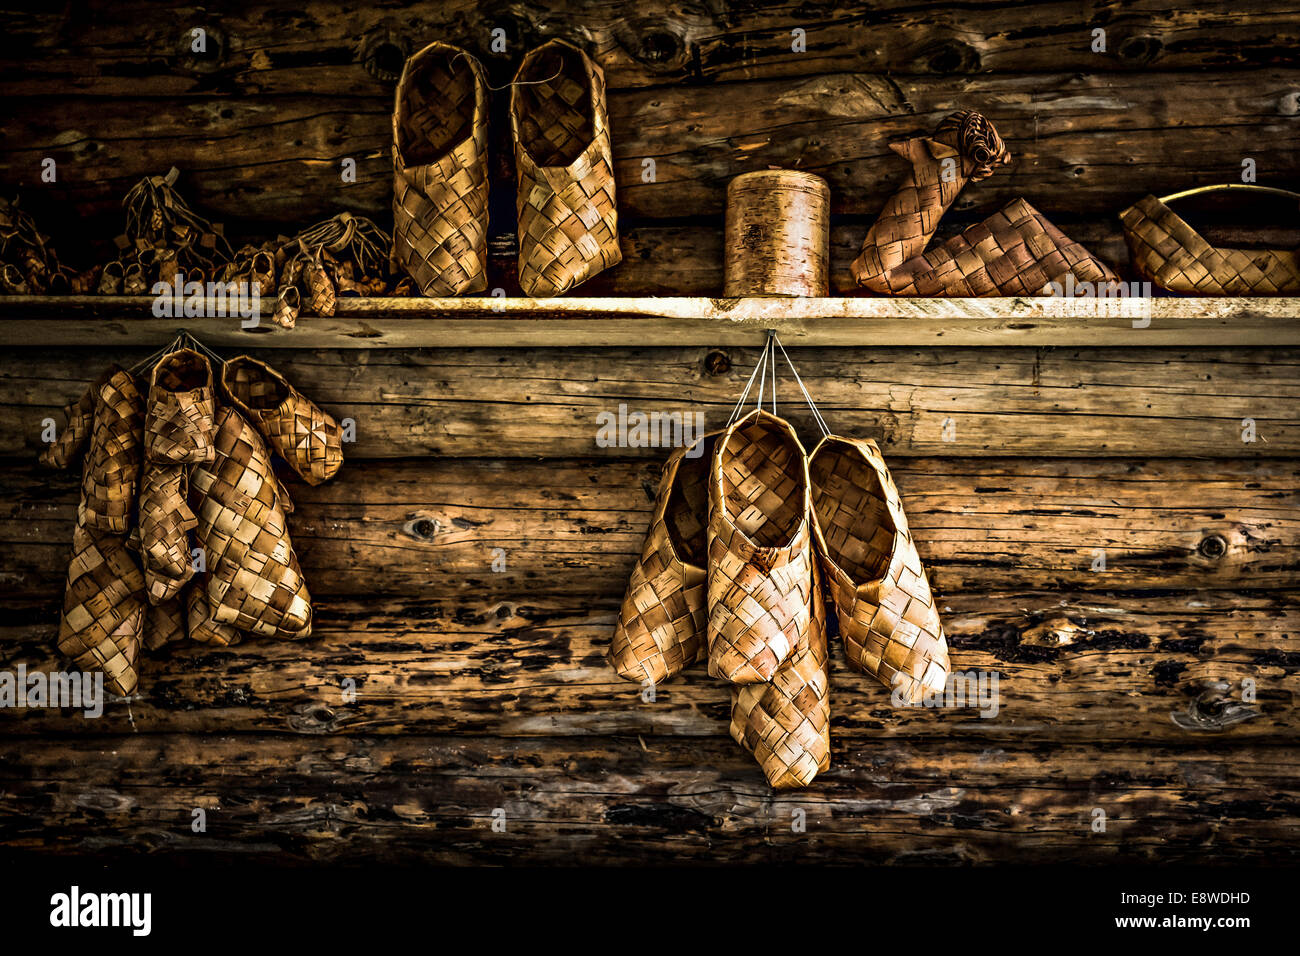 Bast of the bast shoes for sale. All sizes are available including those ones for dwarfs and elves - Stock Image